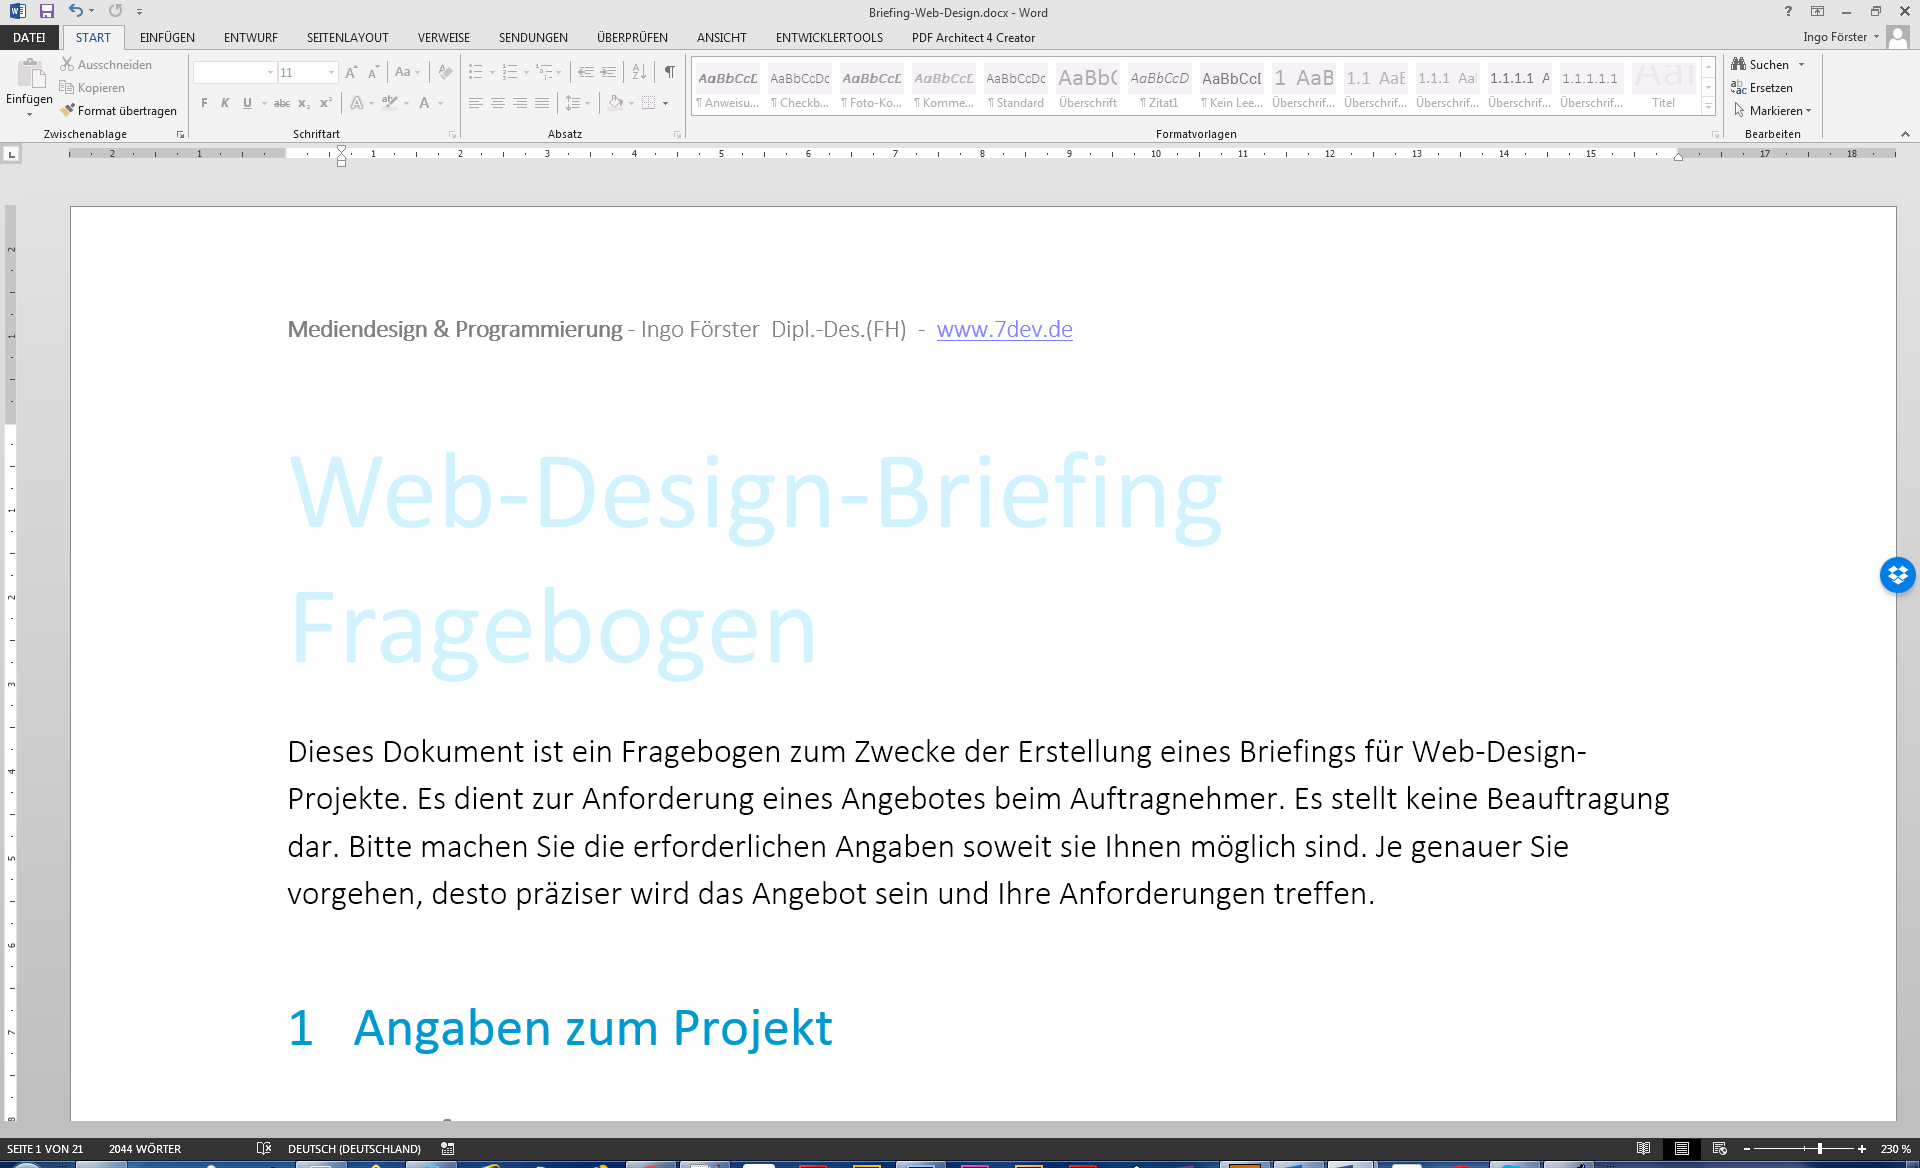 Web-Design-Briefing Word-Vorlage mit Multiple-Choice - UID-Blog ...